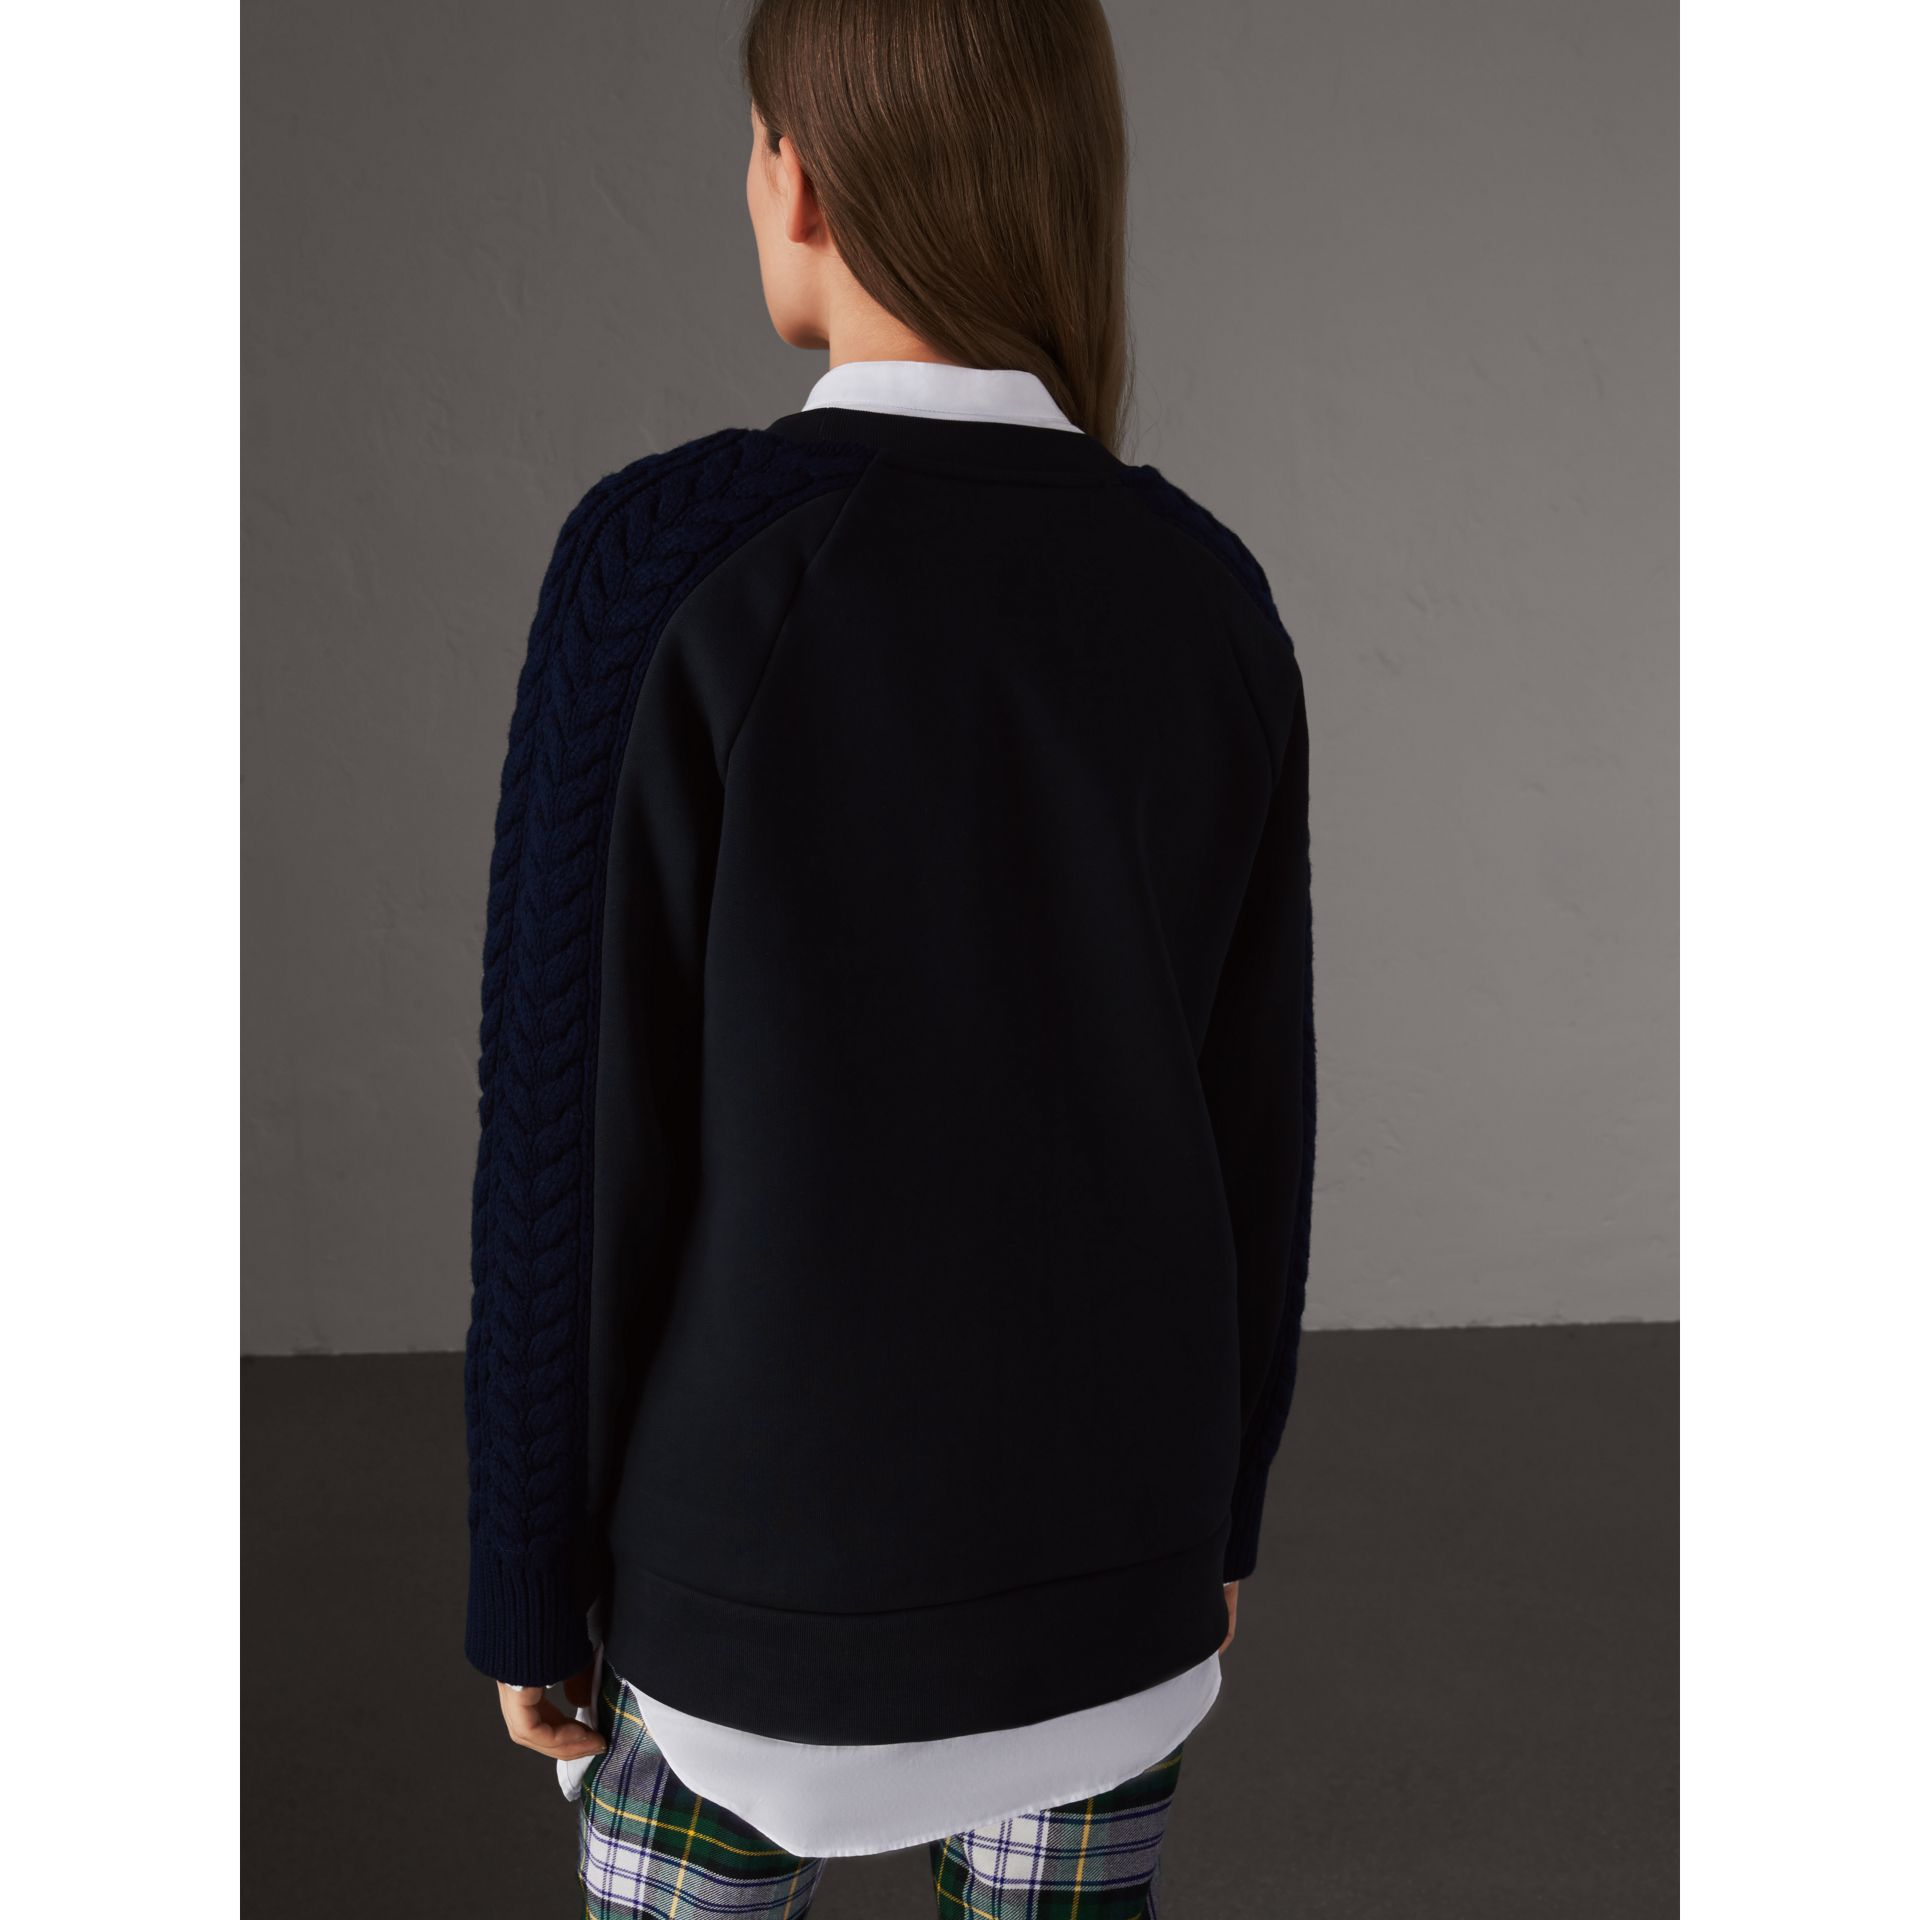 Cable and Fair Isle Knit Detail Cotton Sweatshirt in Navy - Women | Burberry - gallery image 3